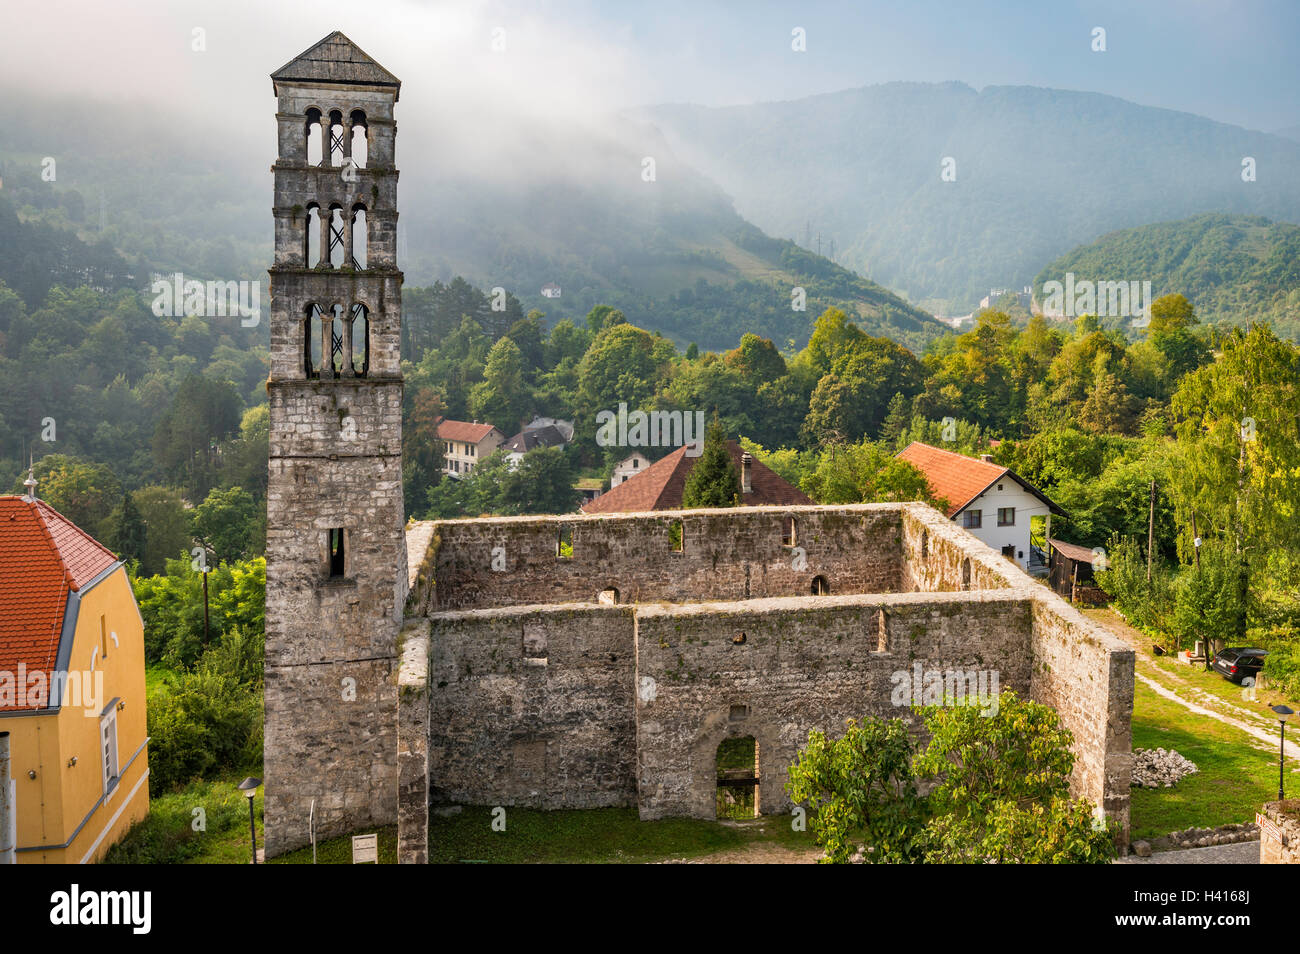 Ruins of St Mary Church and St Luke bell tower, morning haze, in Jajce, Central Bosnia Canton, Bosnia and Herzegovina - Stock Image